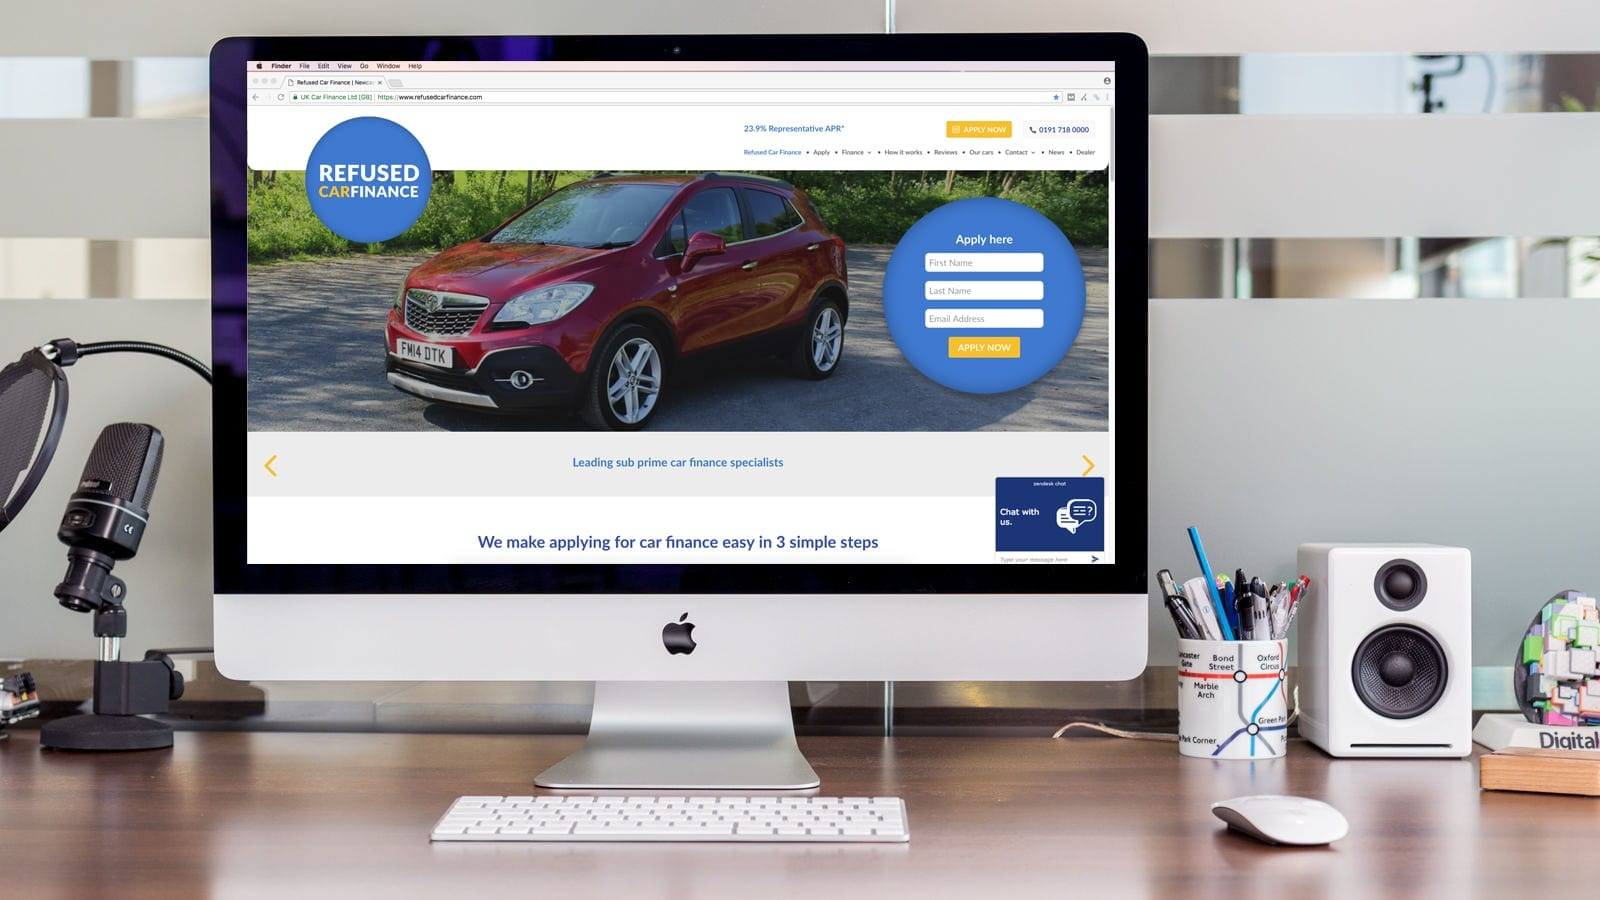 New Refused Car Finance Website